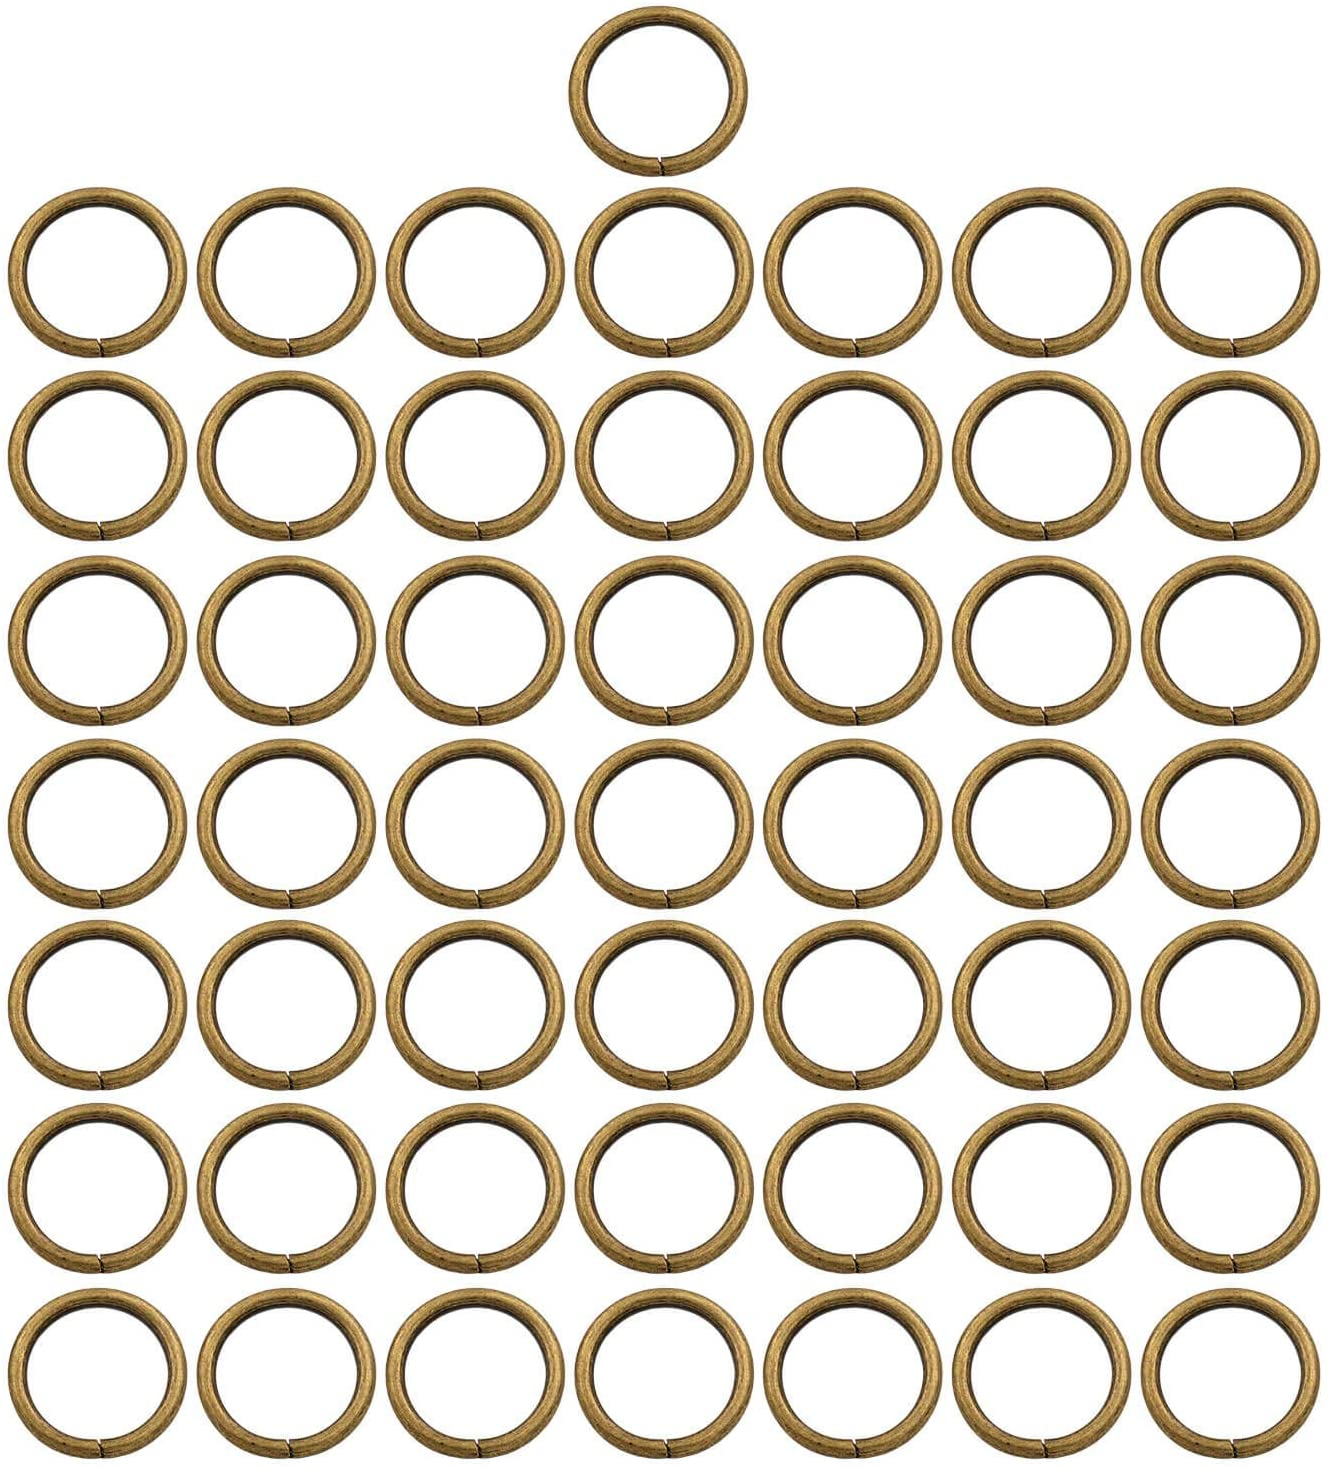 BIKICOCO 4/5'' Metal O-Ring Buckle Connector Round Loops Non Welded for Bags Webbing Purse and Belt Straps, Bronze, Pack of 50